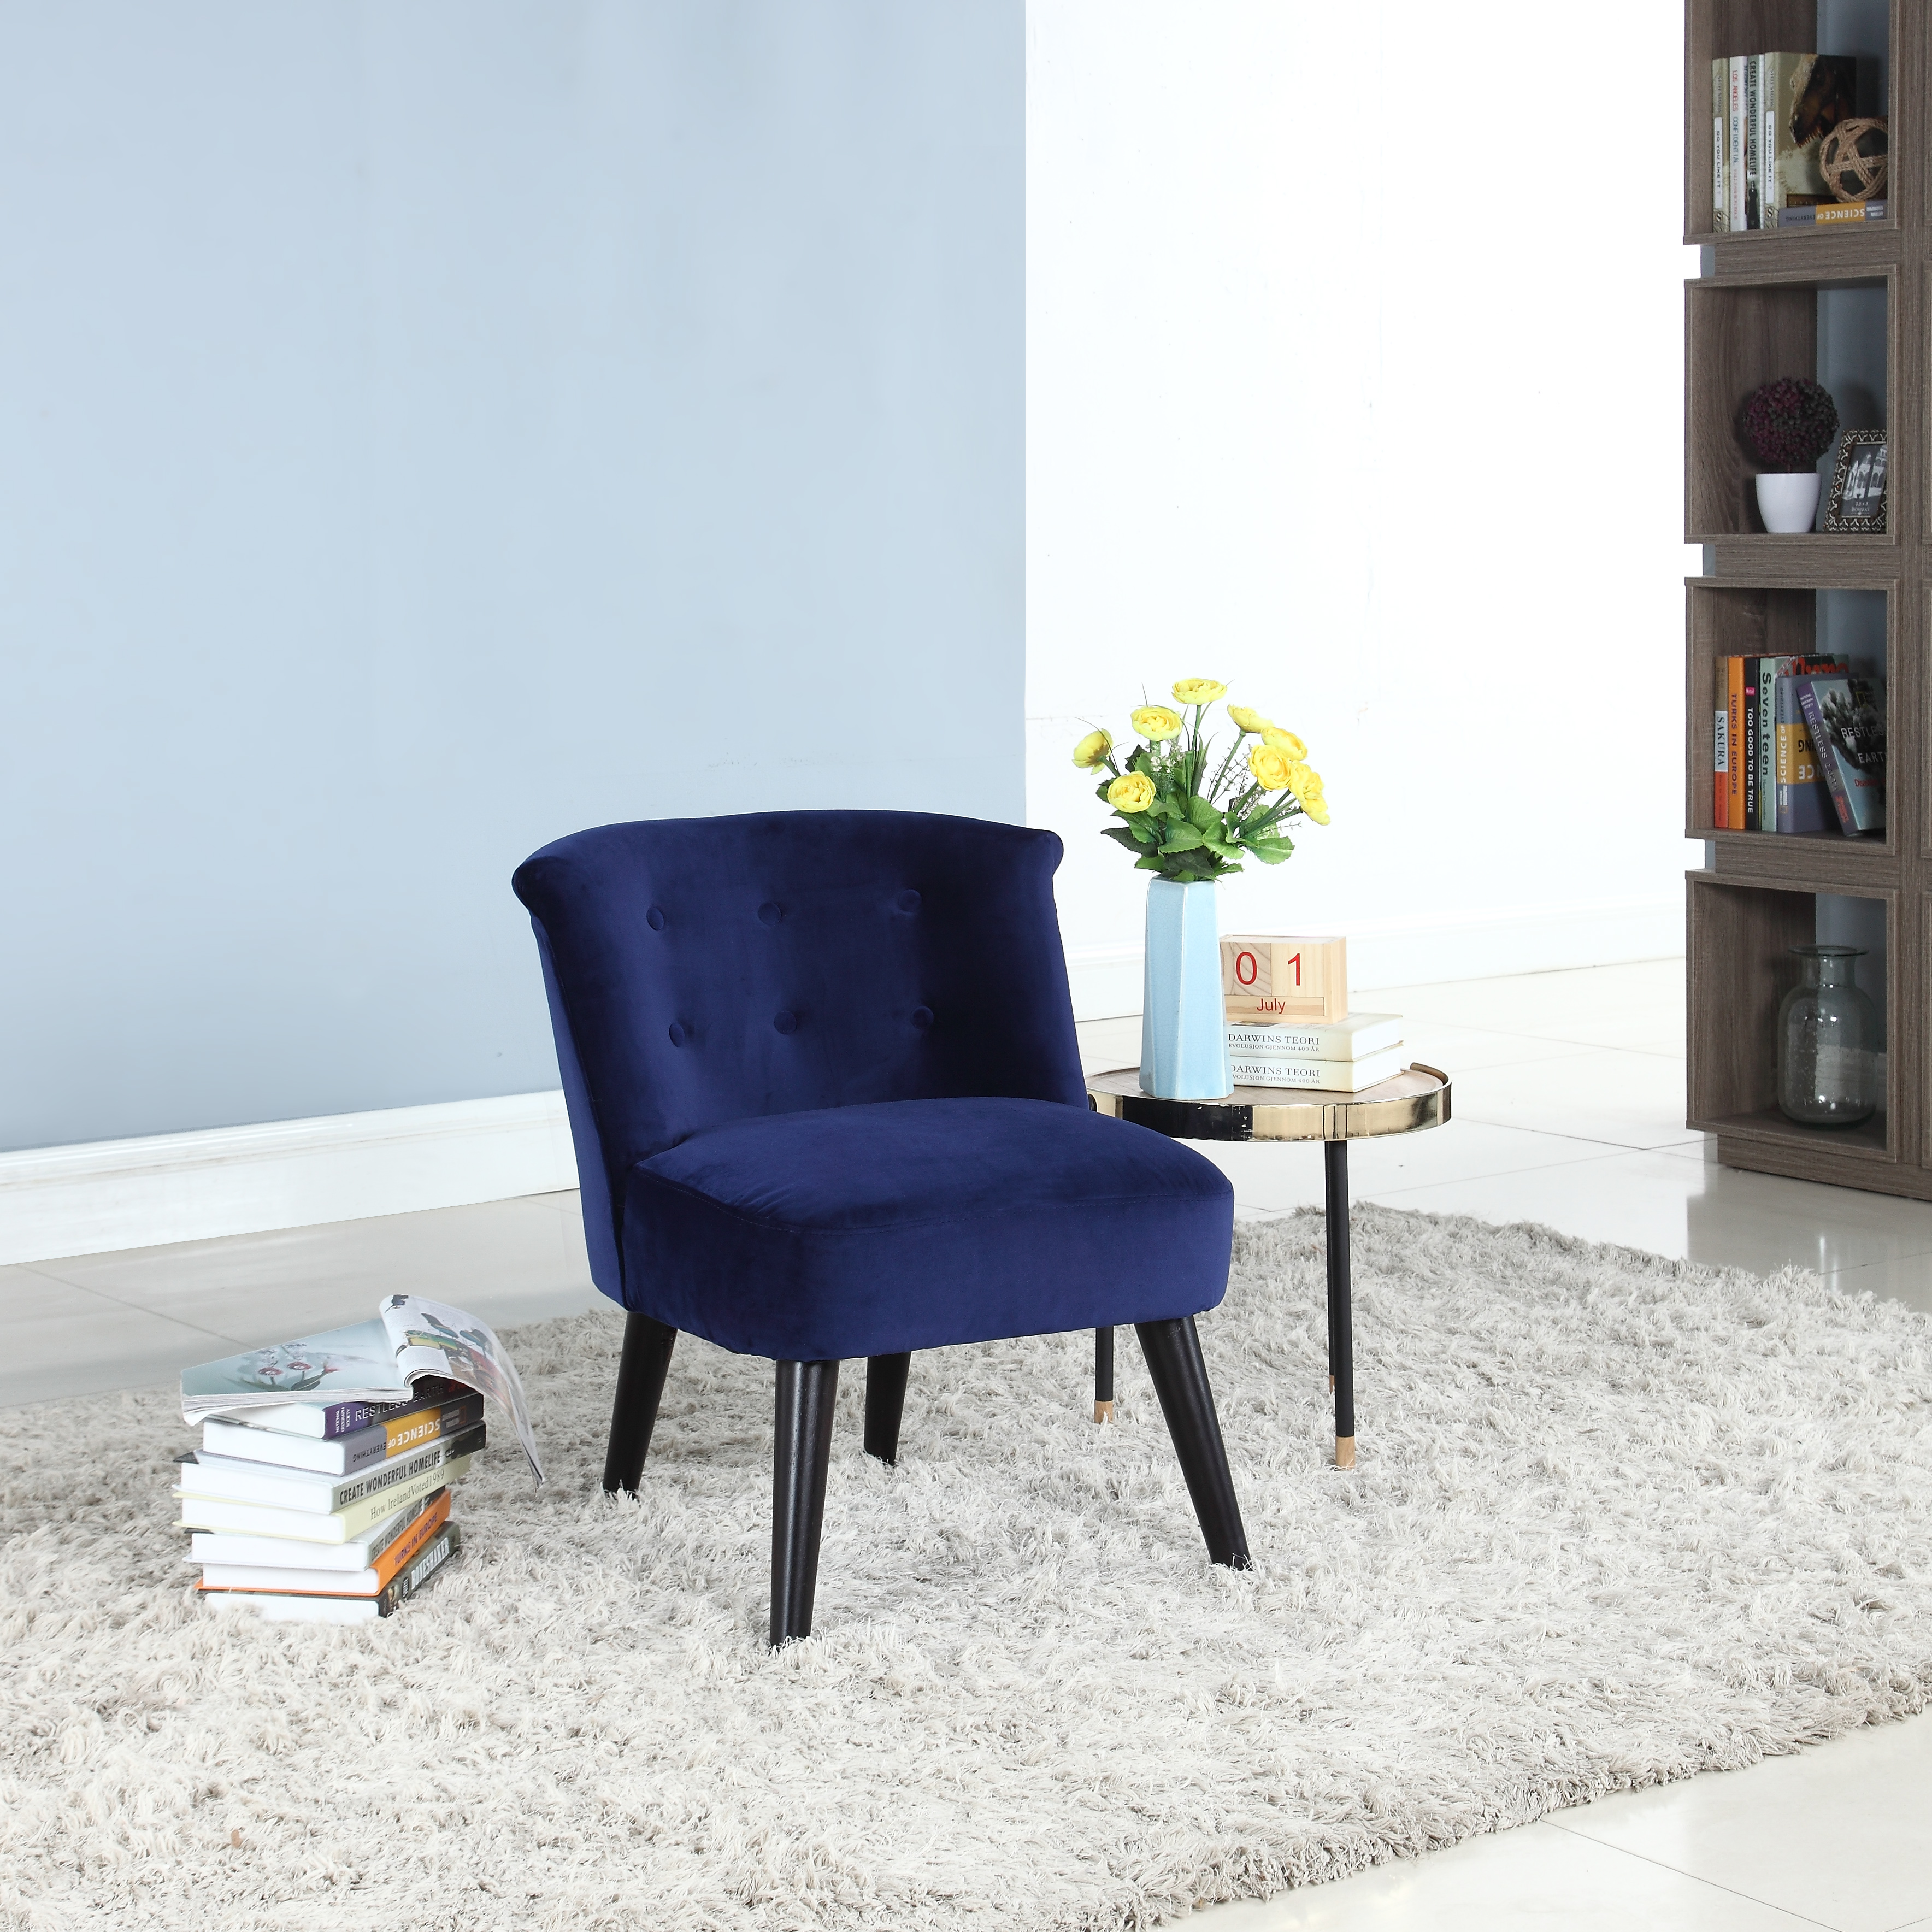 Classic and Traditional Living Room Velvet Fabric Accent Chair with Tufted Details, Navy Blue